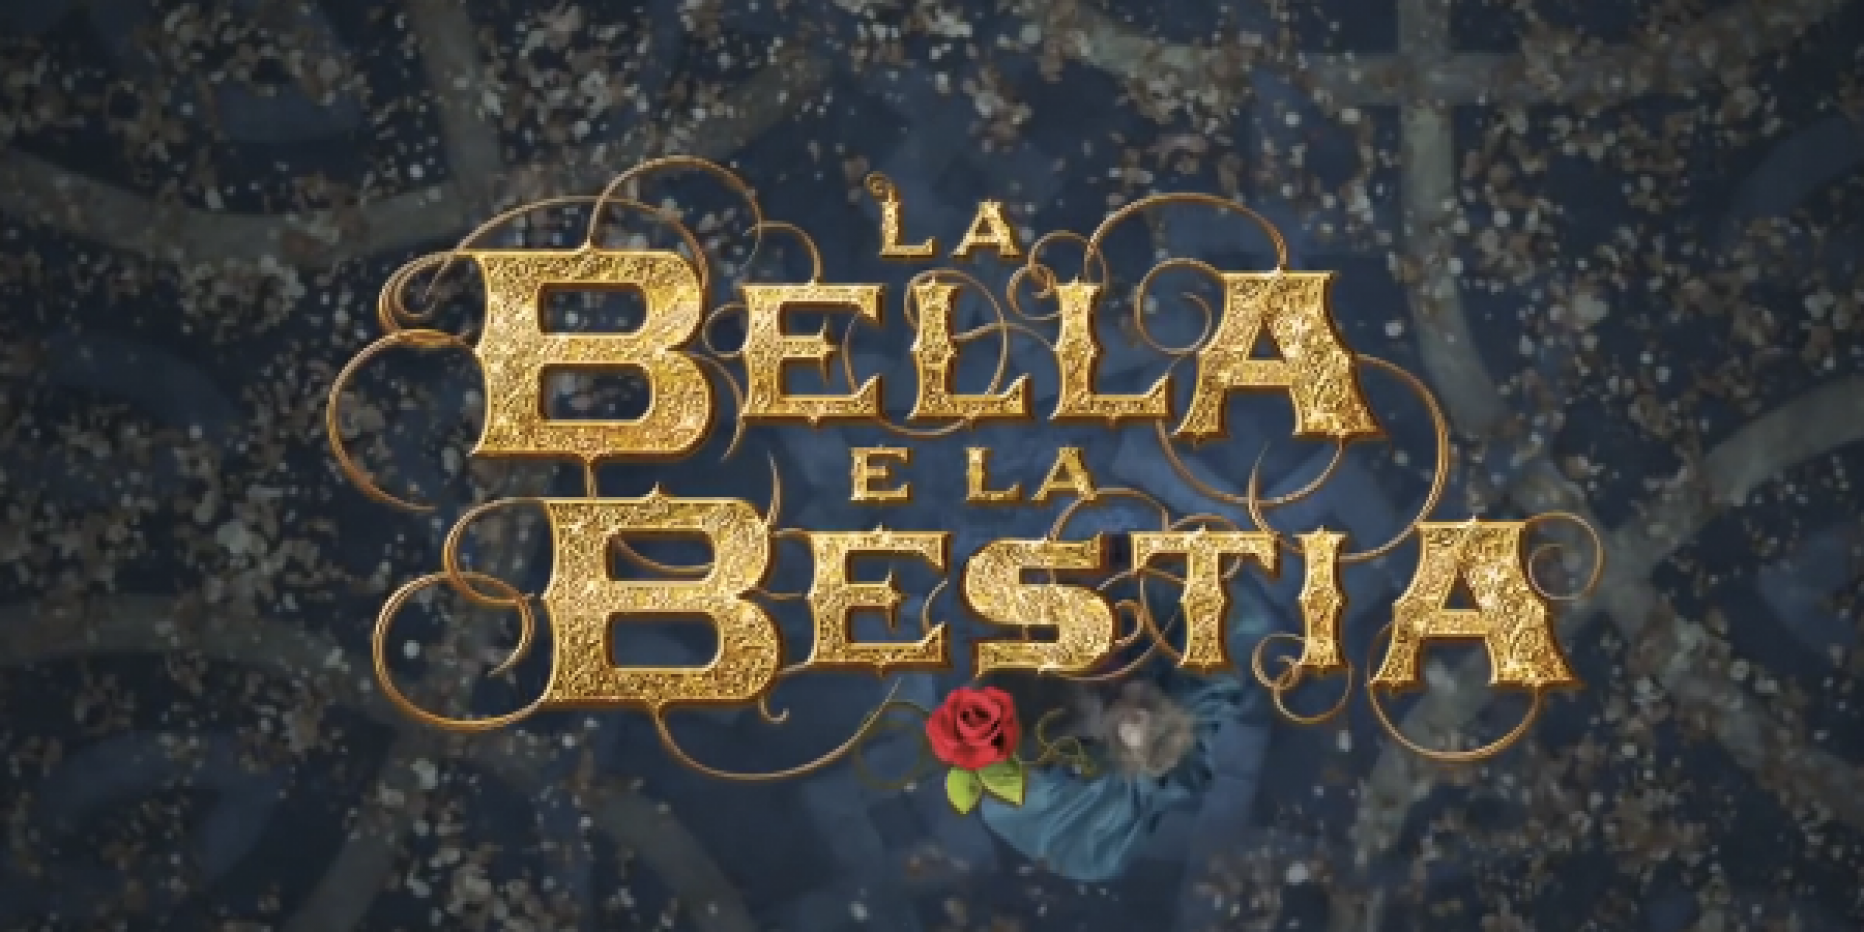 La-bella-e-la-bestia-streaming-ita-film-completo-1864x932